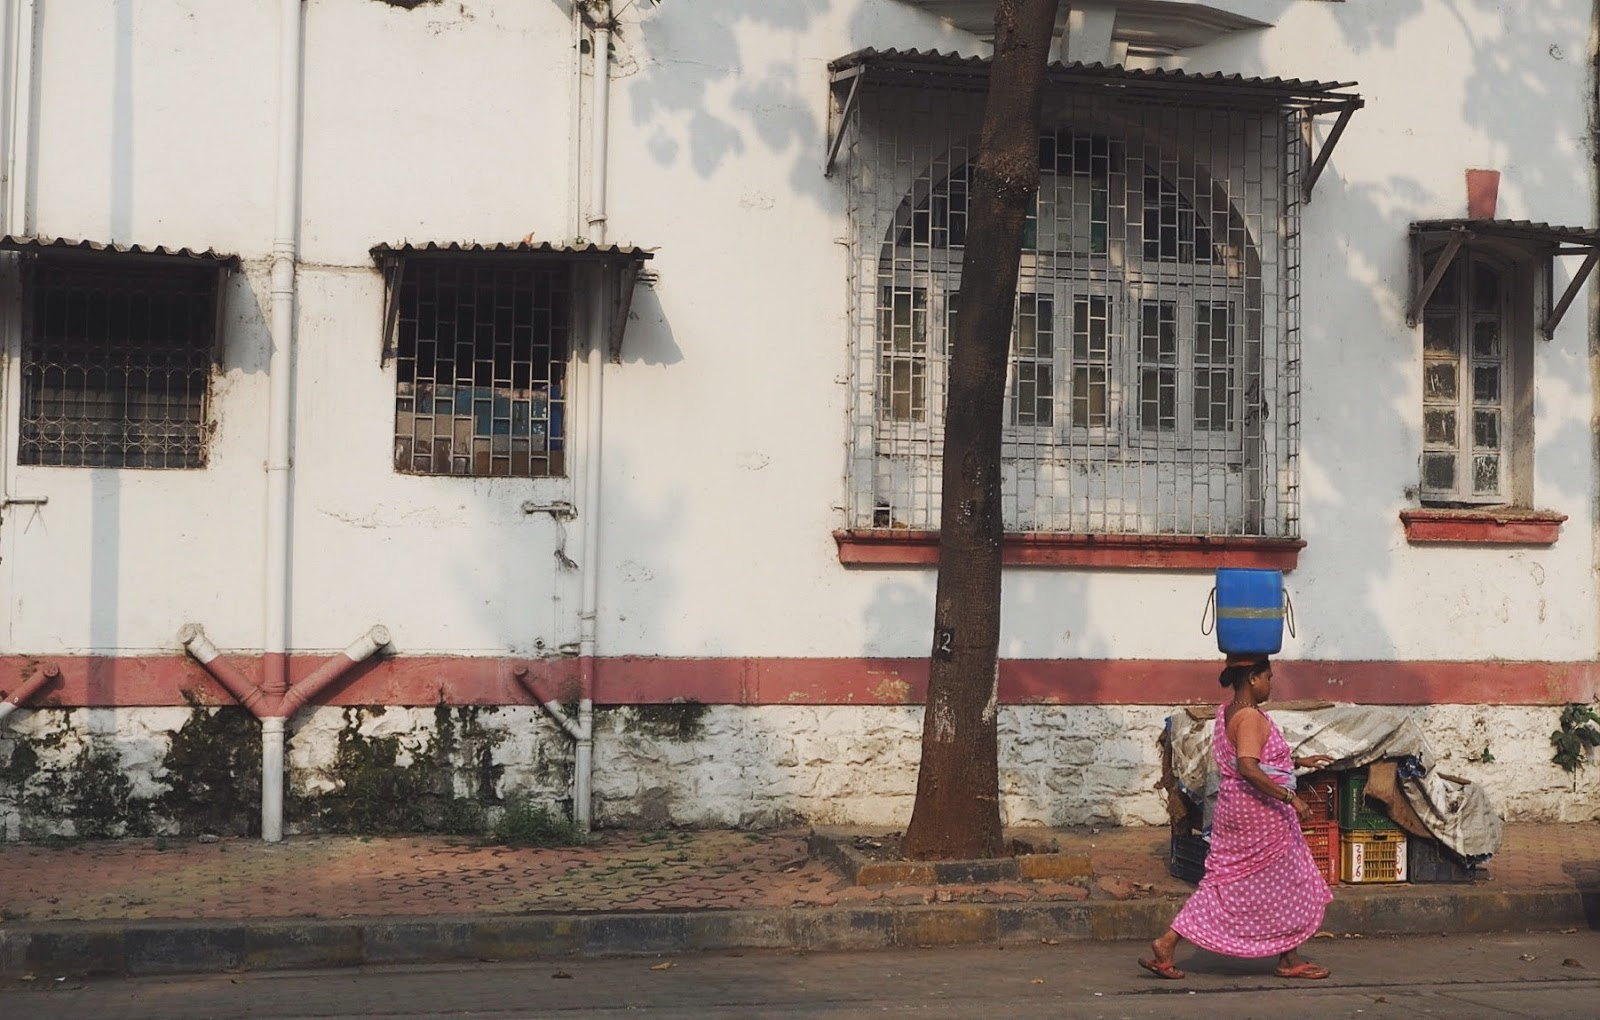 Woman carrying things on head, mumbai, colourful India